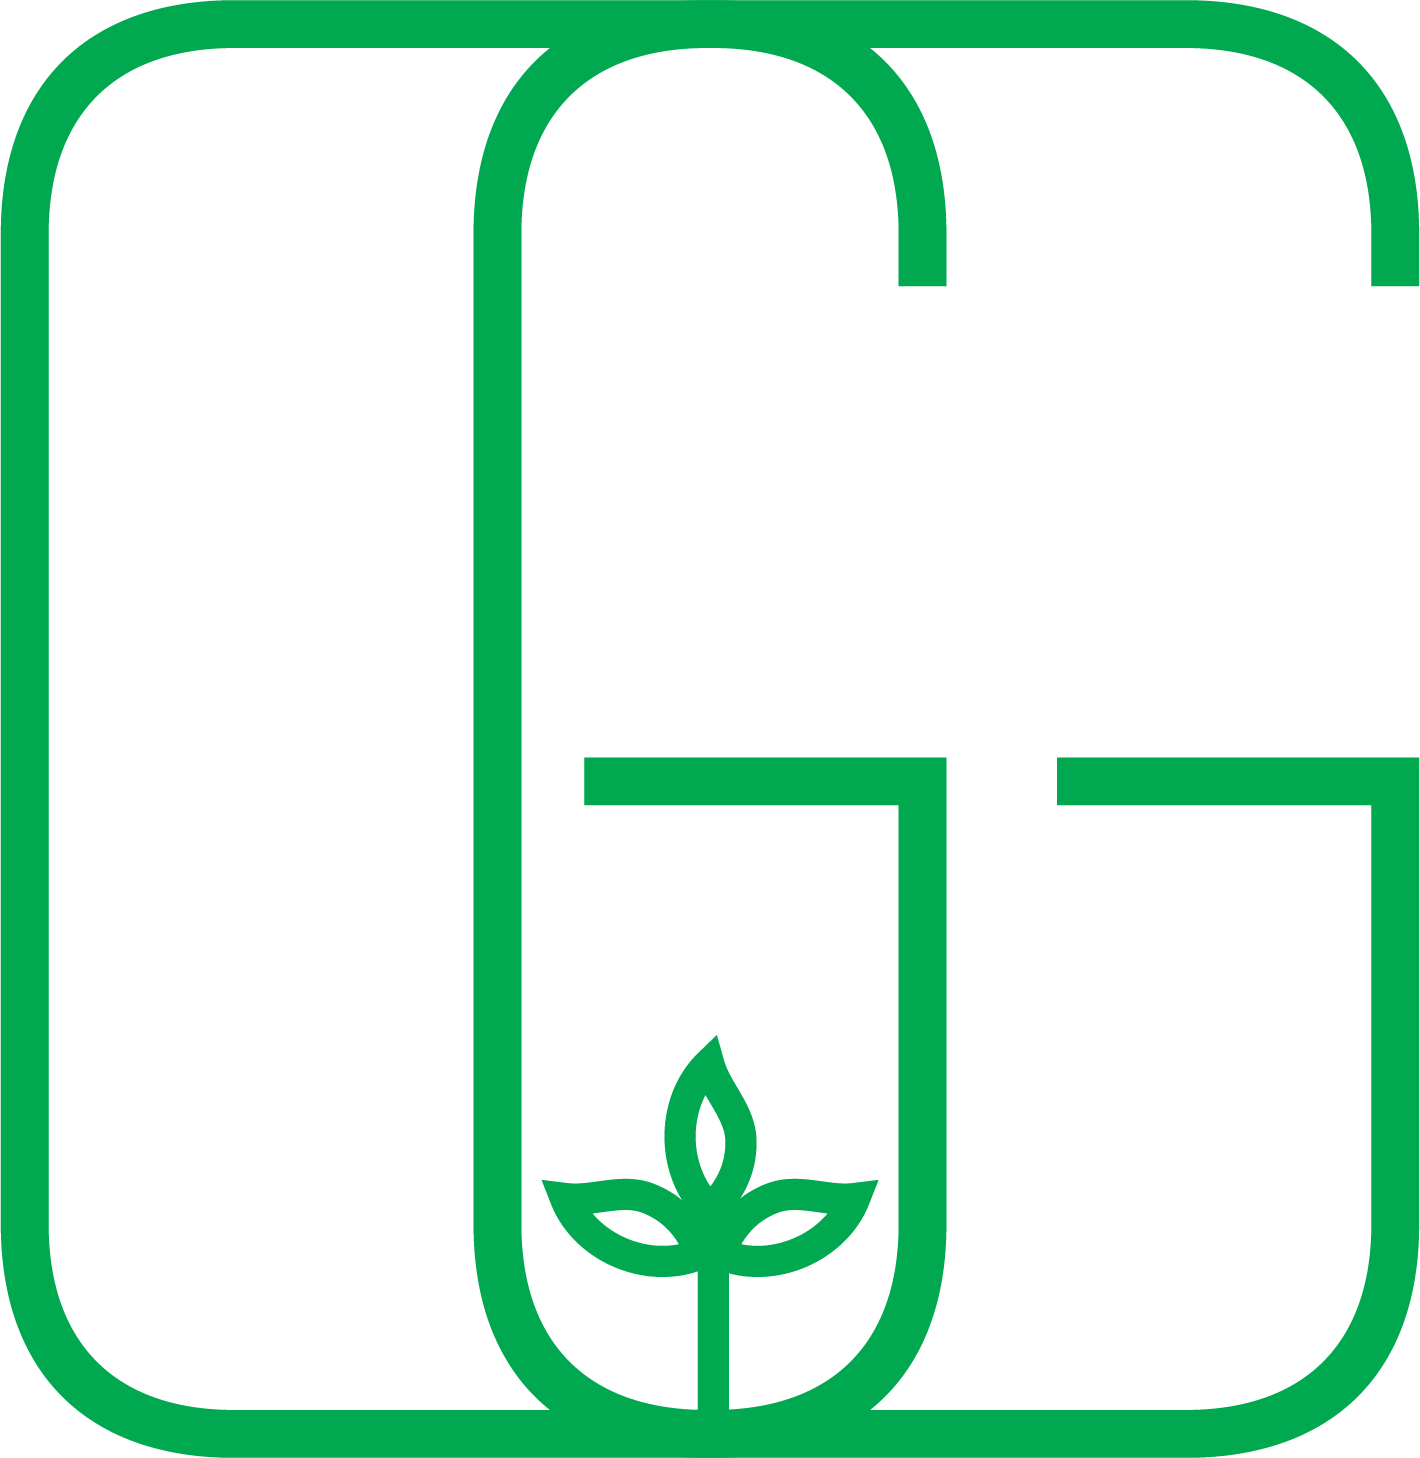 Green Growth Brands To Debut On The Cse With Symbol Ggb On November